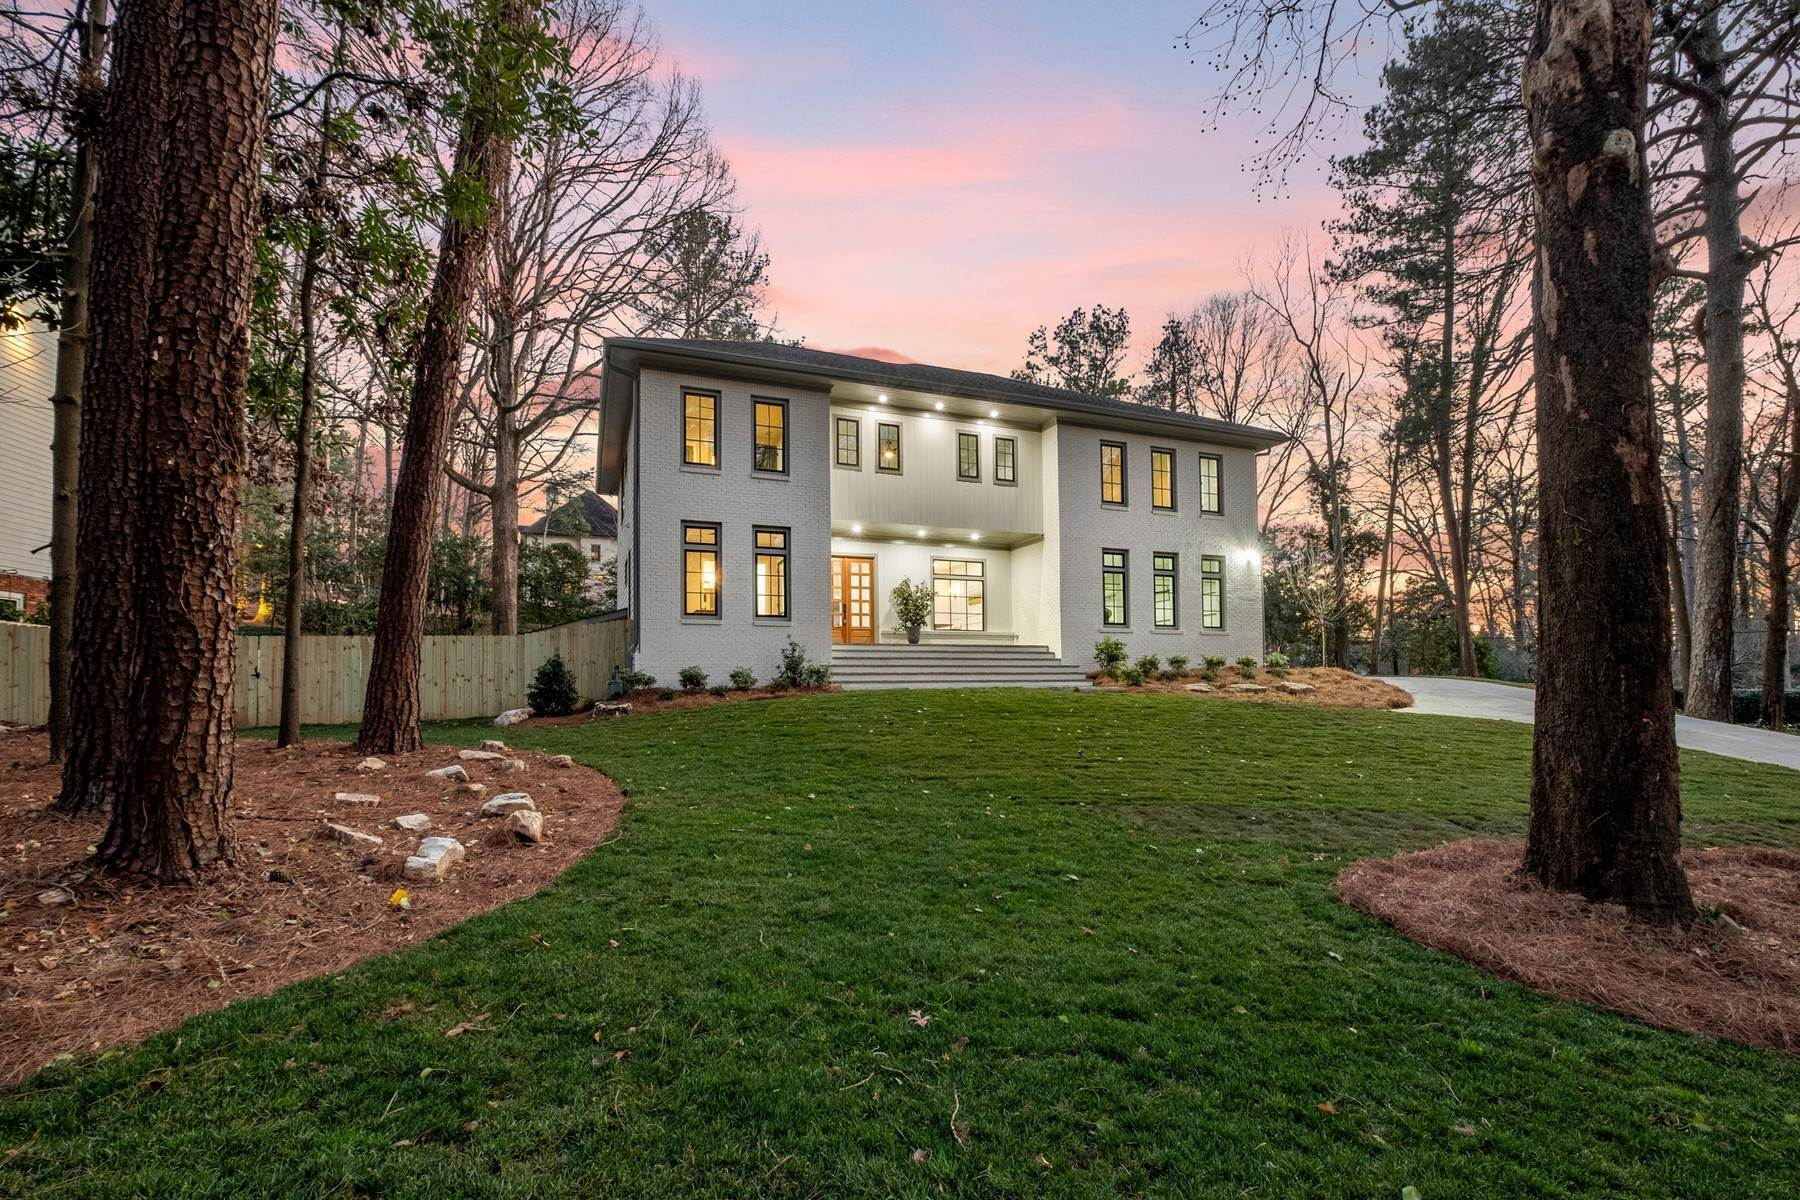 Single Family Homes for Sale at Sleek Modern Farmhouse in Heart of Buckhead 1580 W Wesley Road Atlanta, Georgia 30327 United States